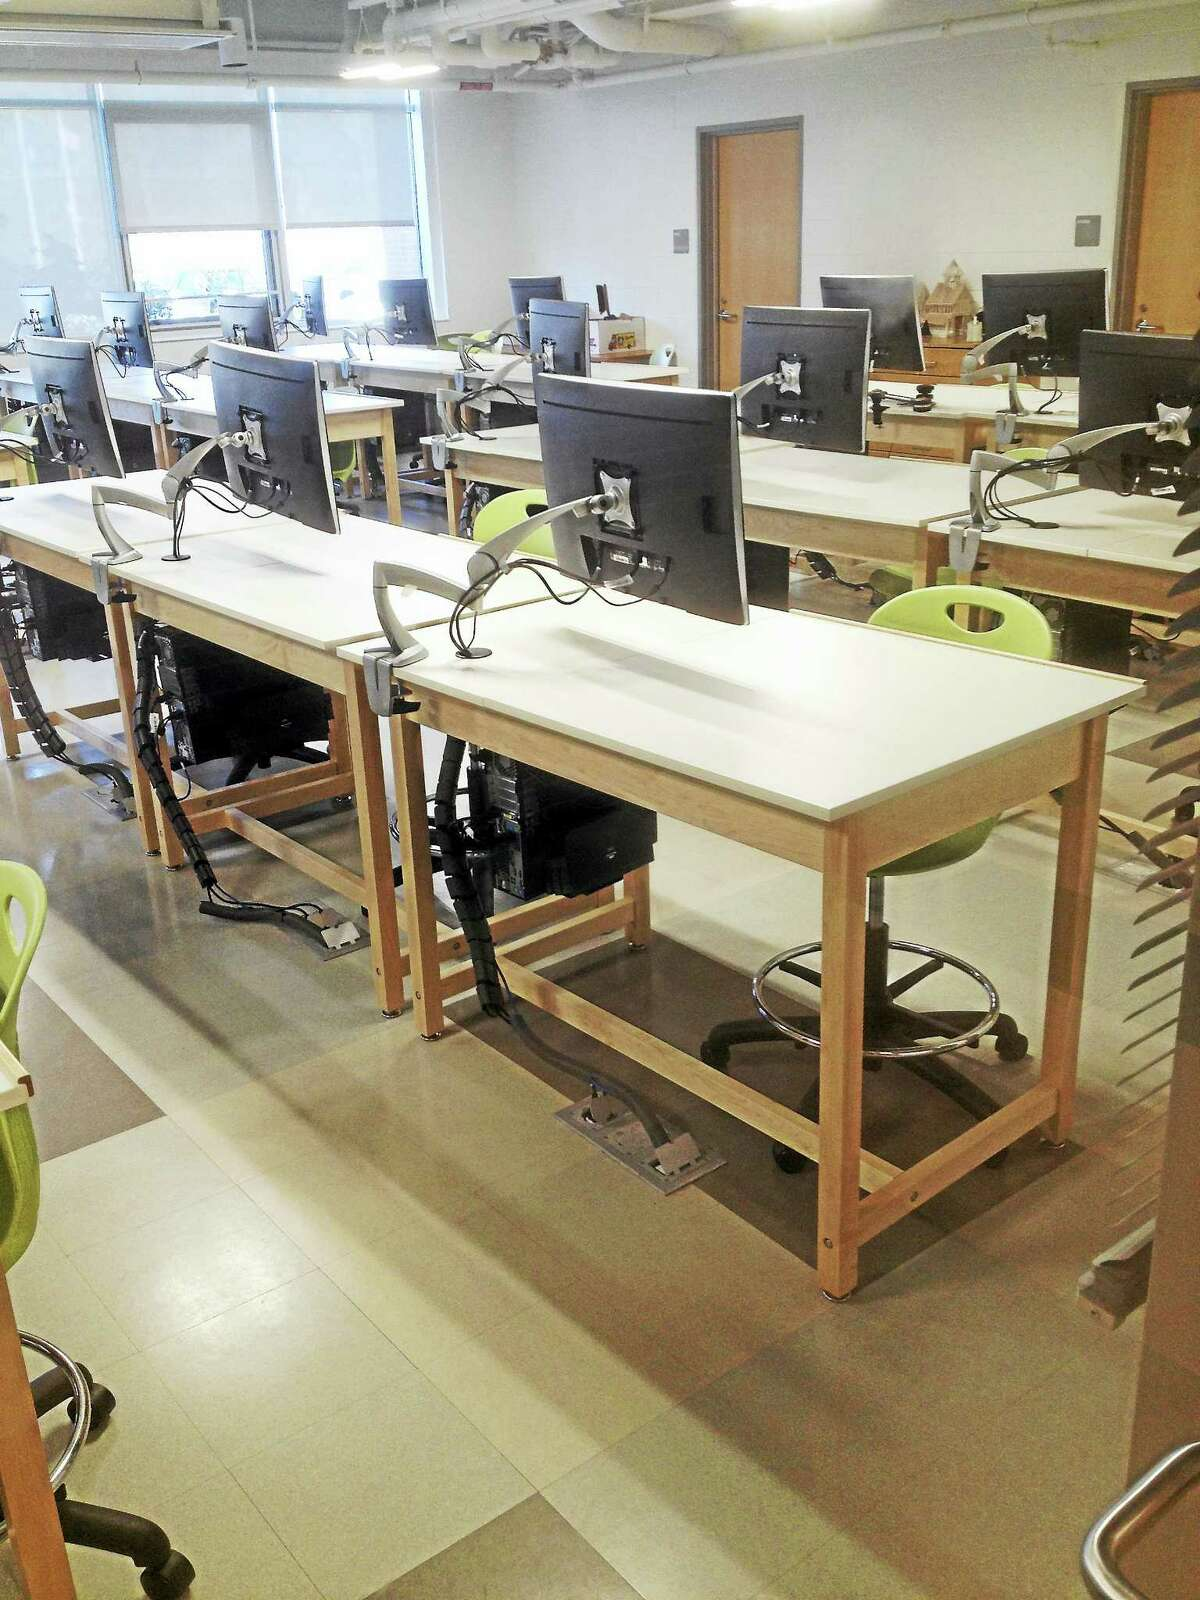 The last block of renovated classrooms will open at month's end.